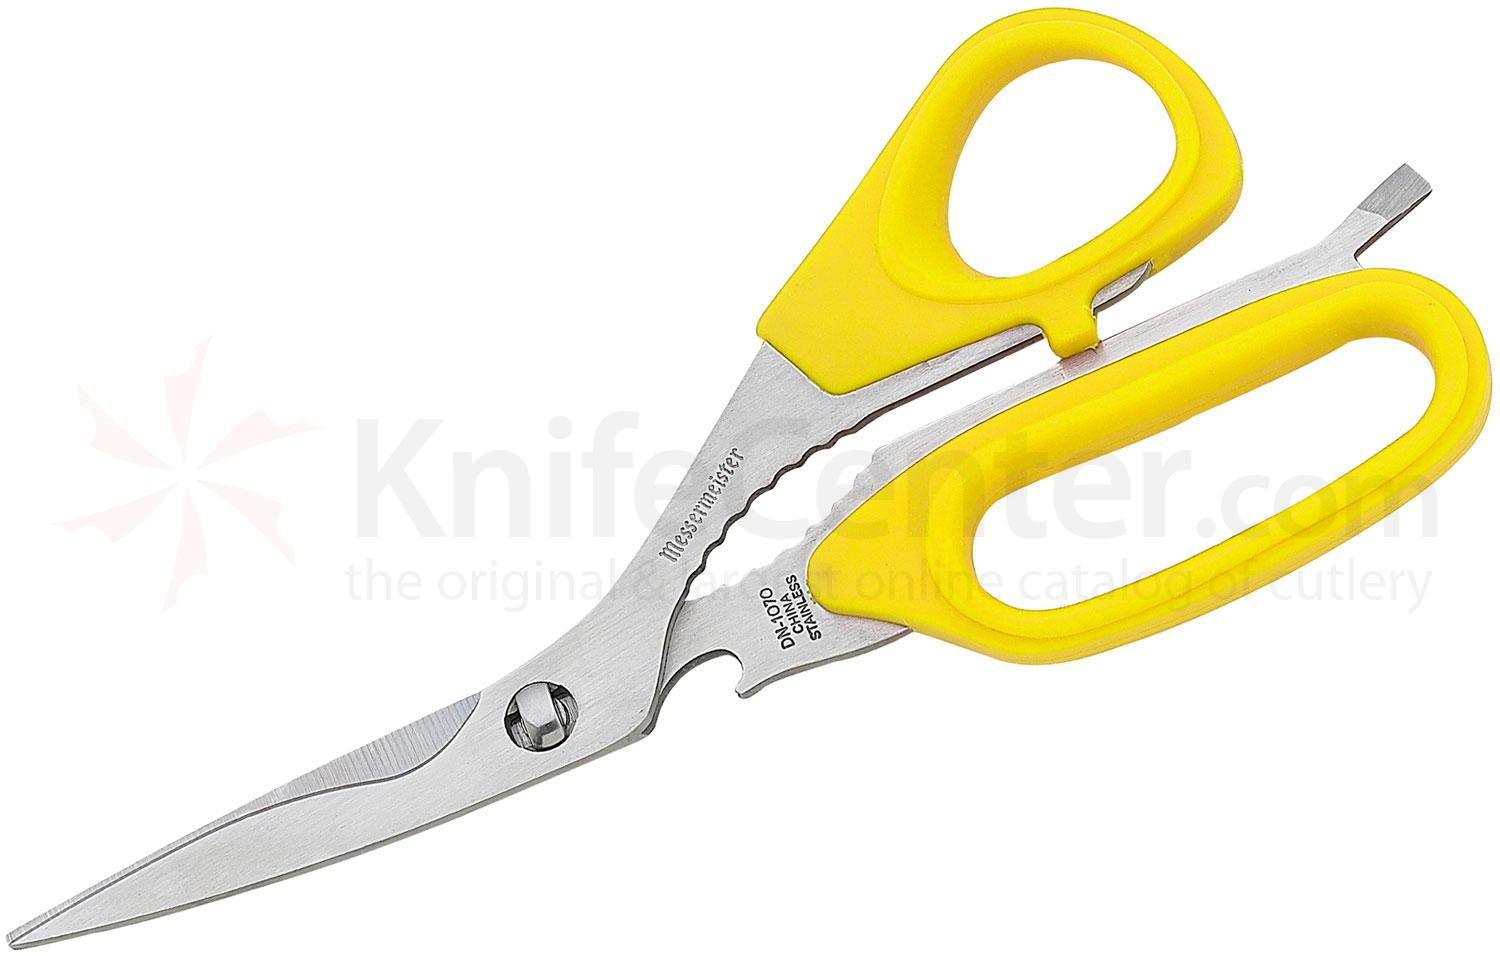 Messermeister 8-1/2 inch Take-Apart Utility Shears, Yellow